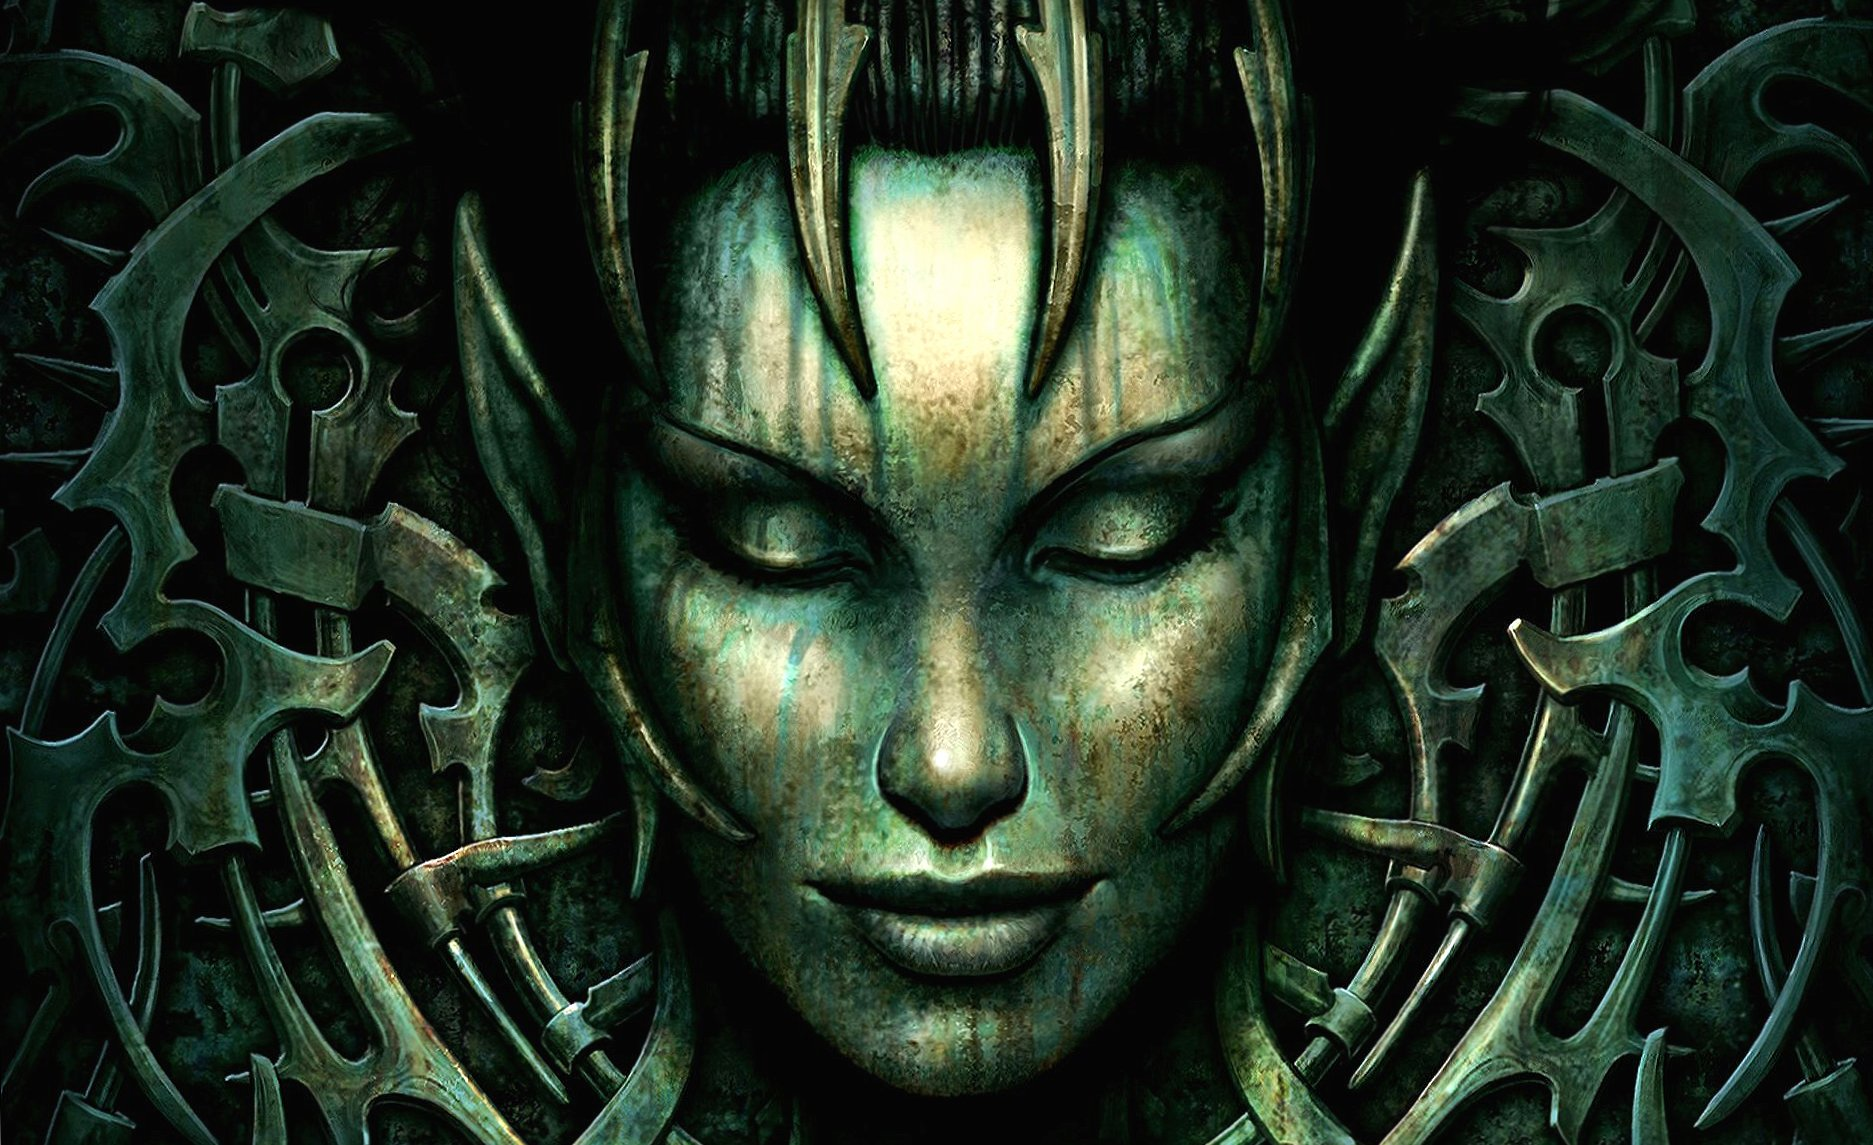 Guardian giger style wallpapers HD quality